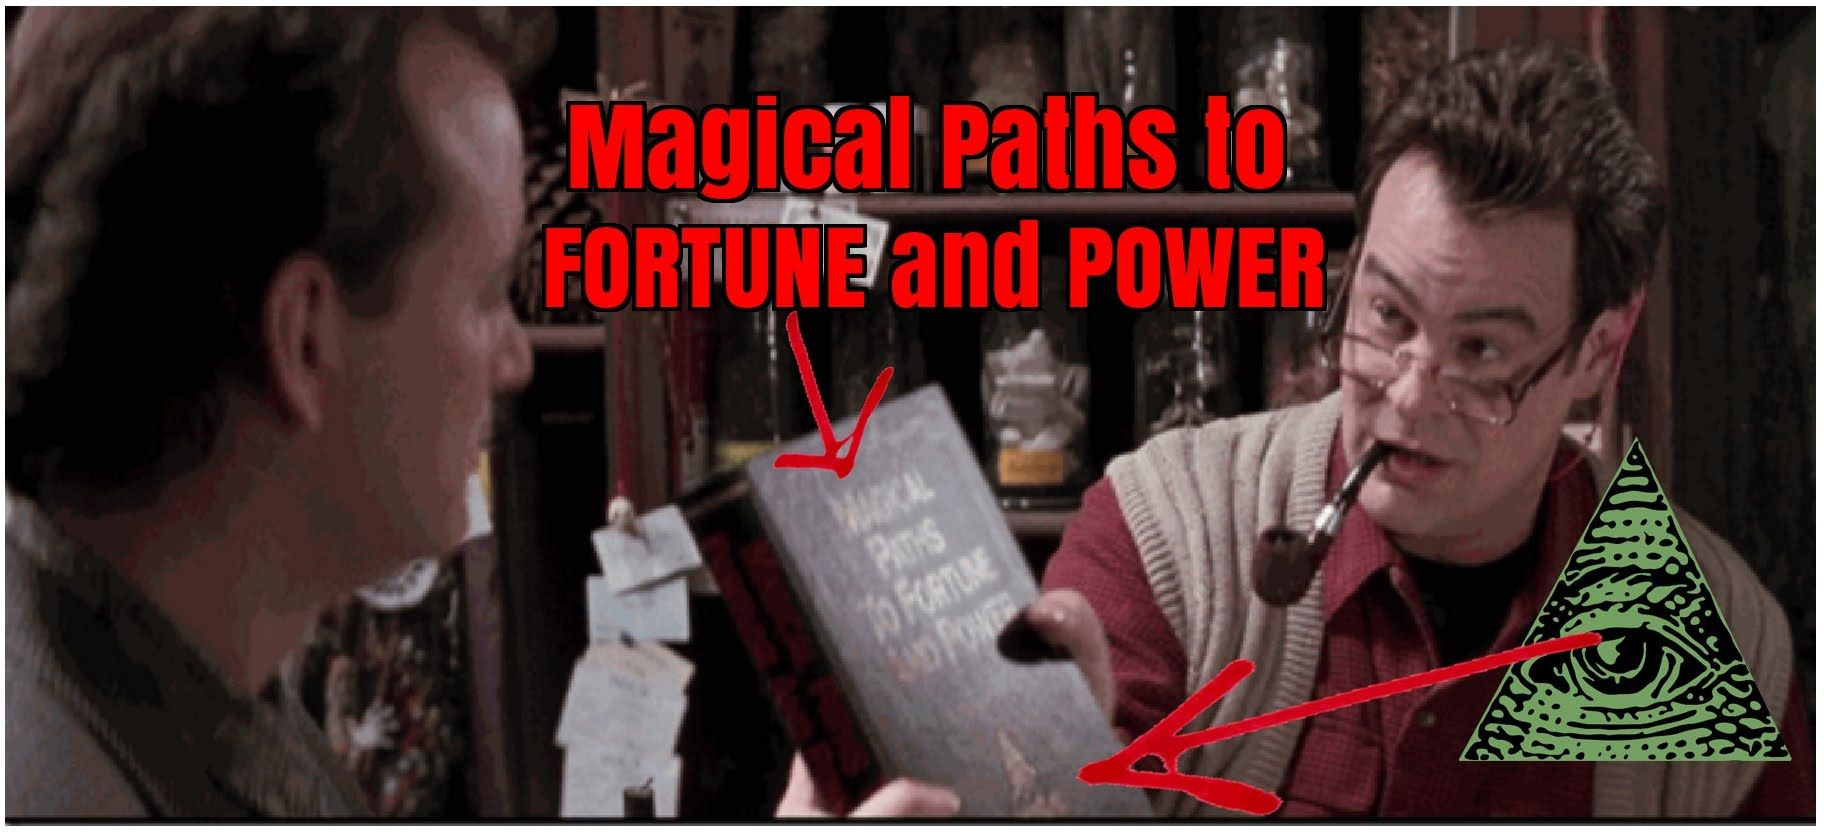 Ghostbusters 2 1989 illuminati symbolism hidden in plain sight in this video i expose satanic illuminati symbolism found in the second ghostbusters movie released in in one scene a book is visible with the title m buycottarizona